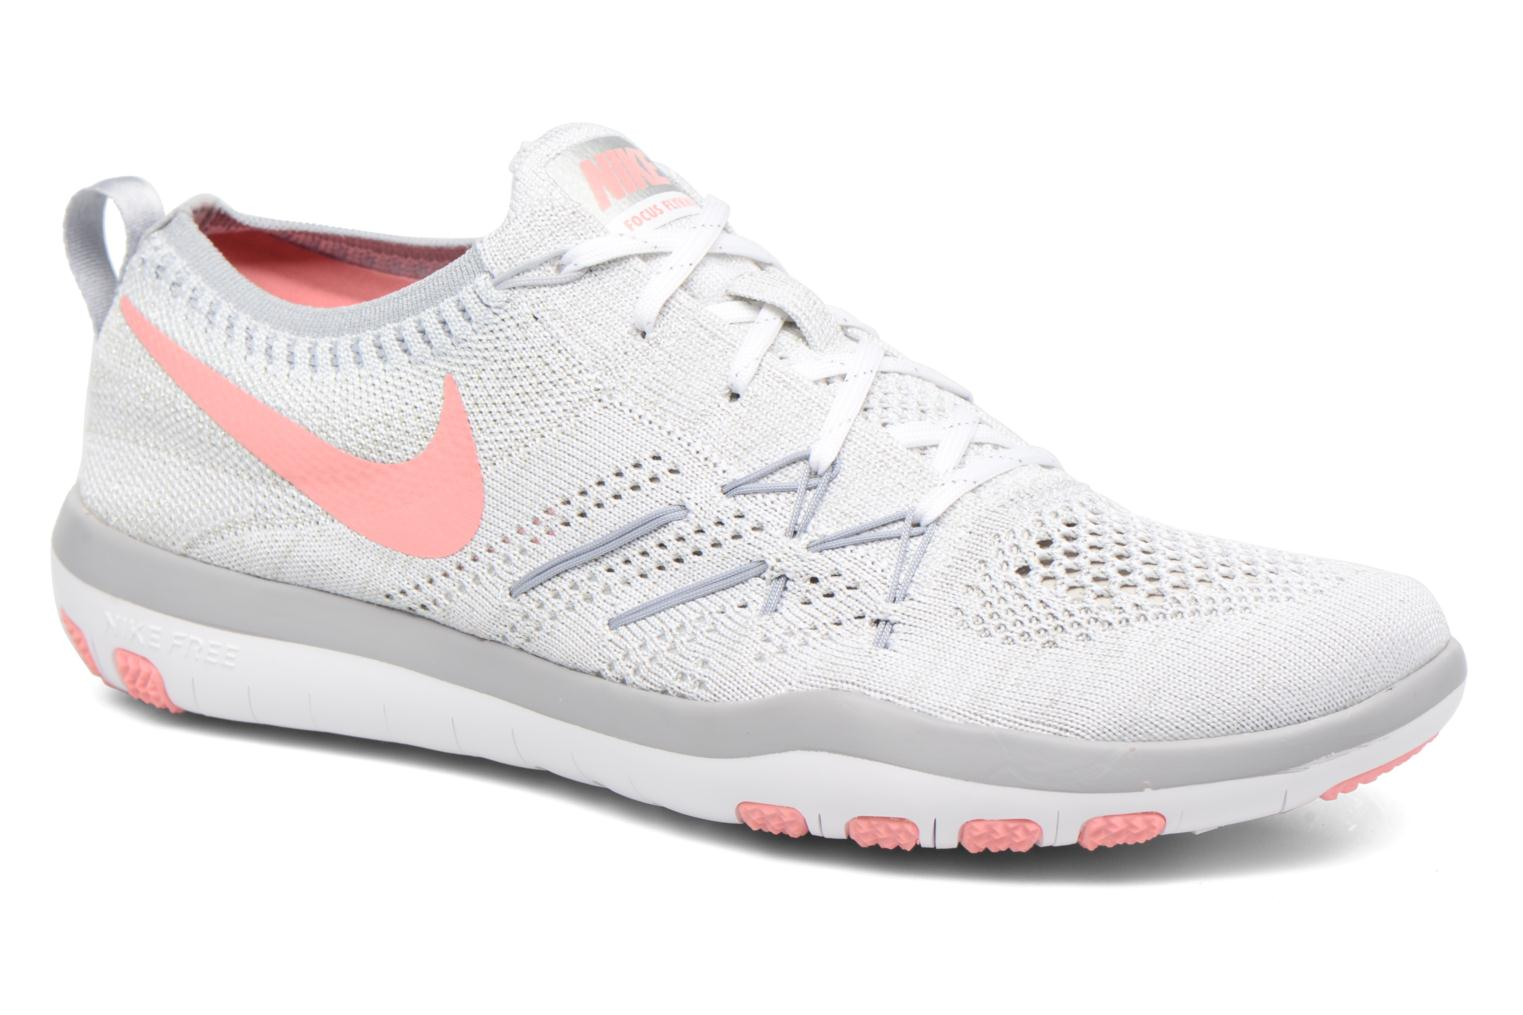 Marques Chaussure femme Nike femme W Nike Free Tr Focus Flyknit White/Bright Melon-Wolf Grey